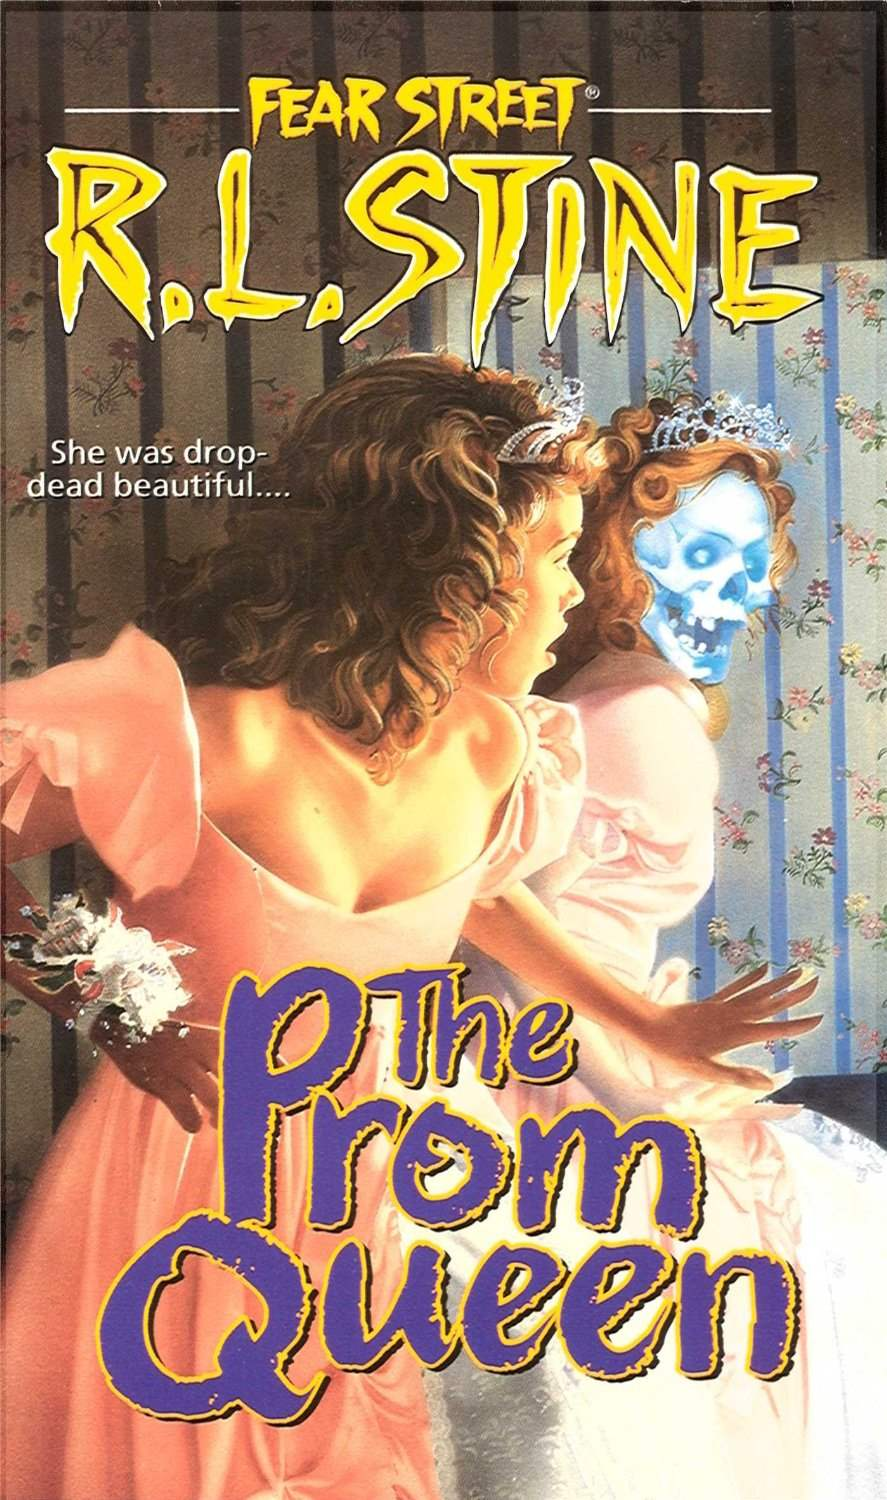 R.L. Stine's Fear Street Prom Queen